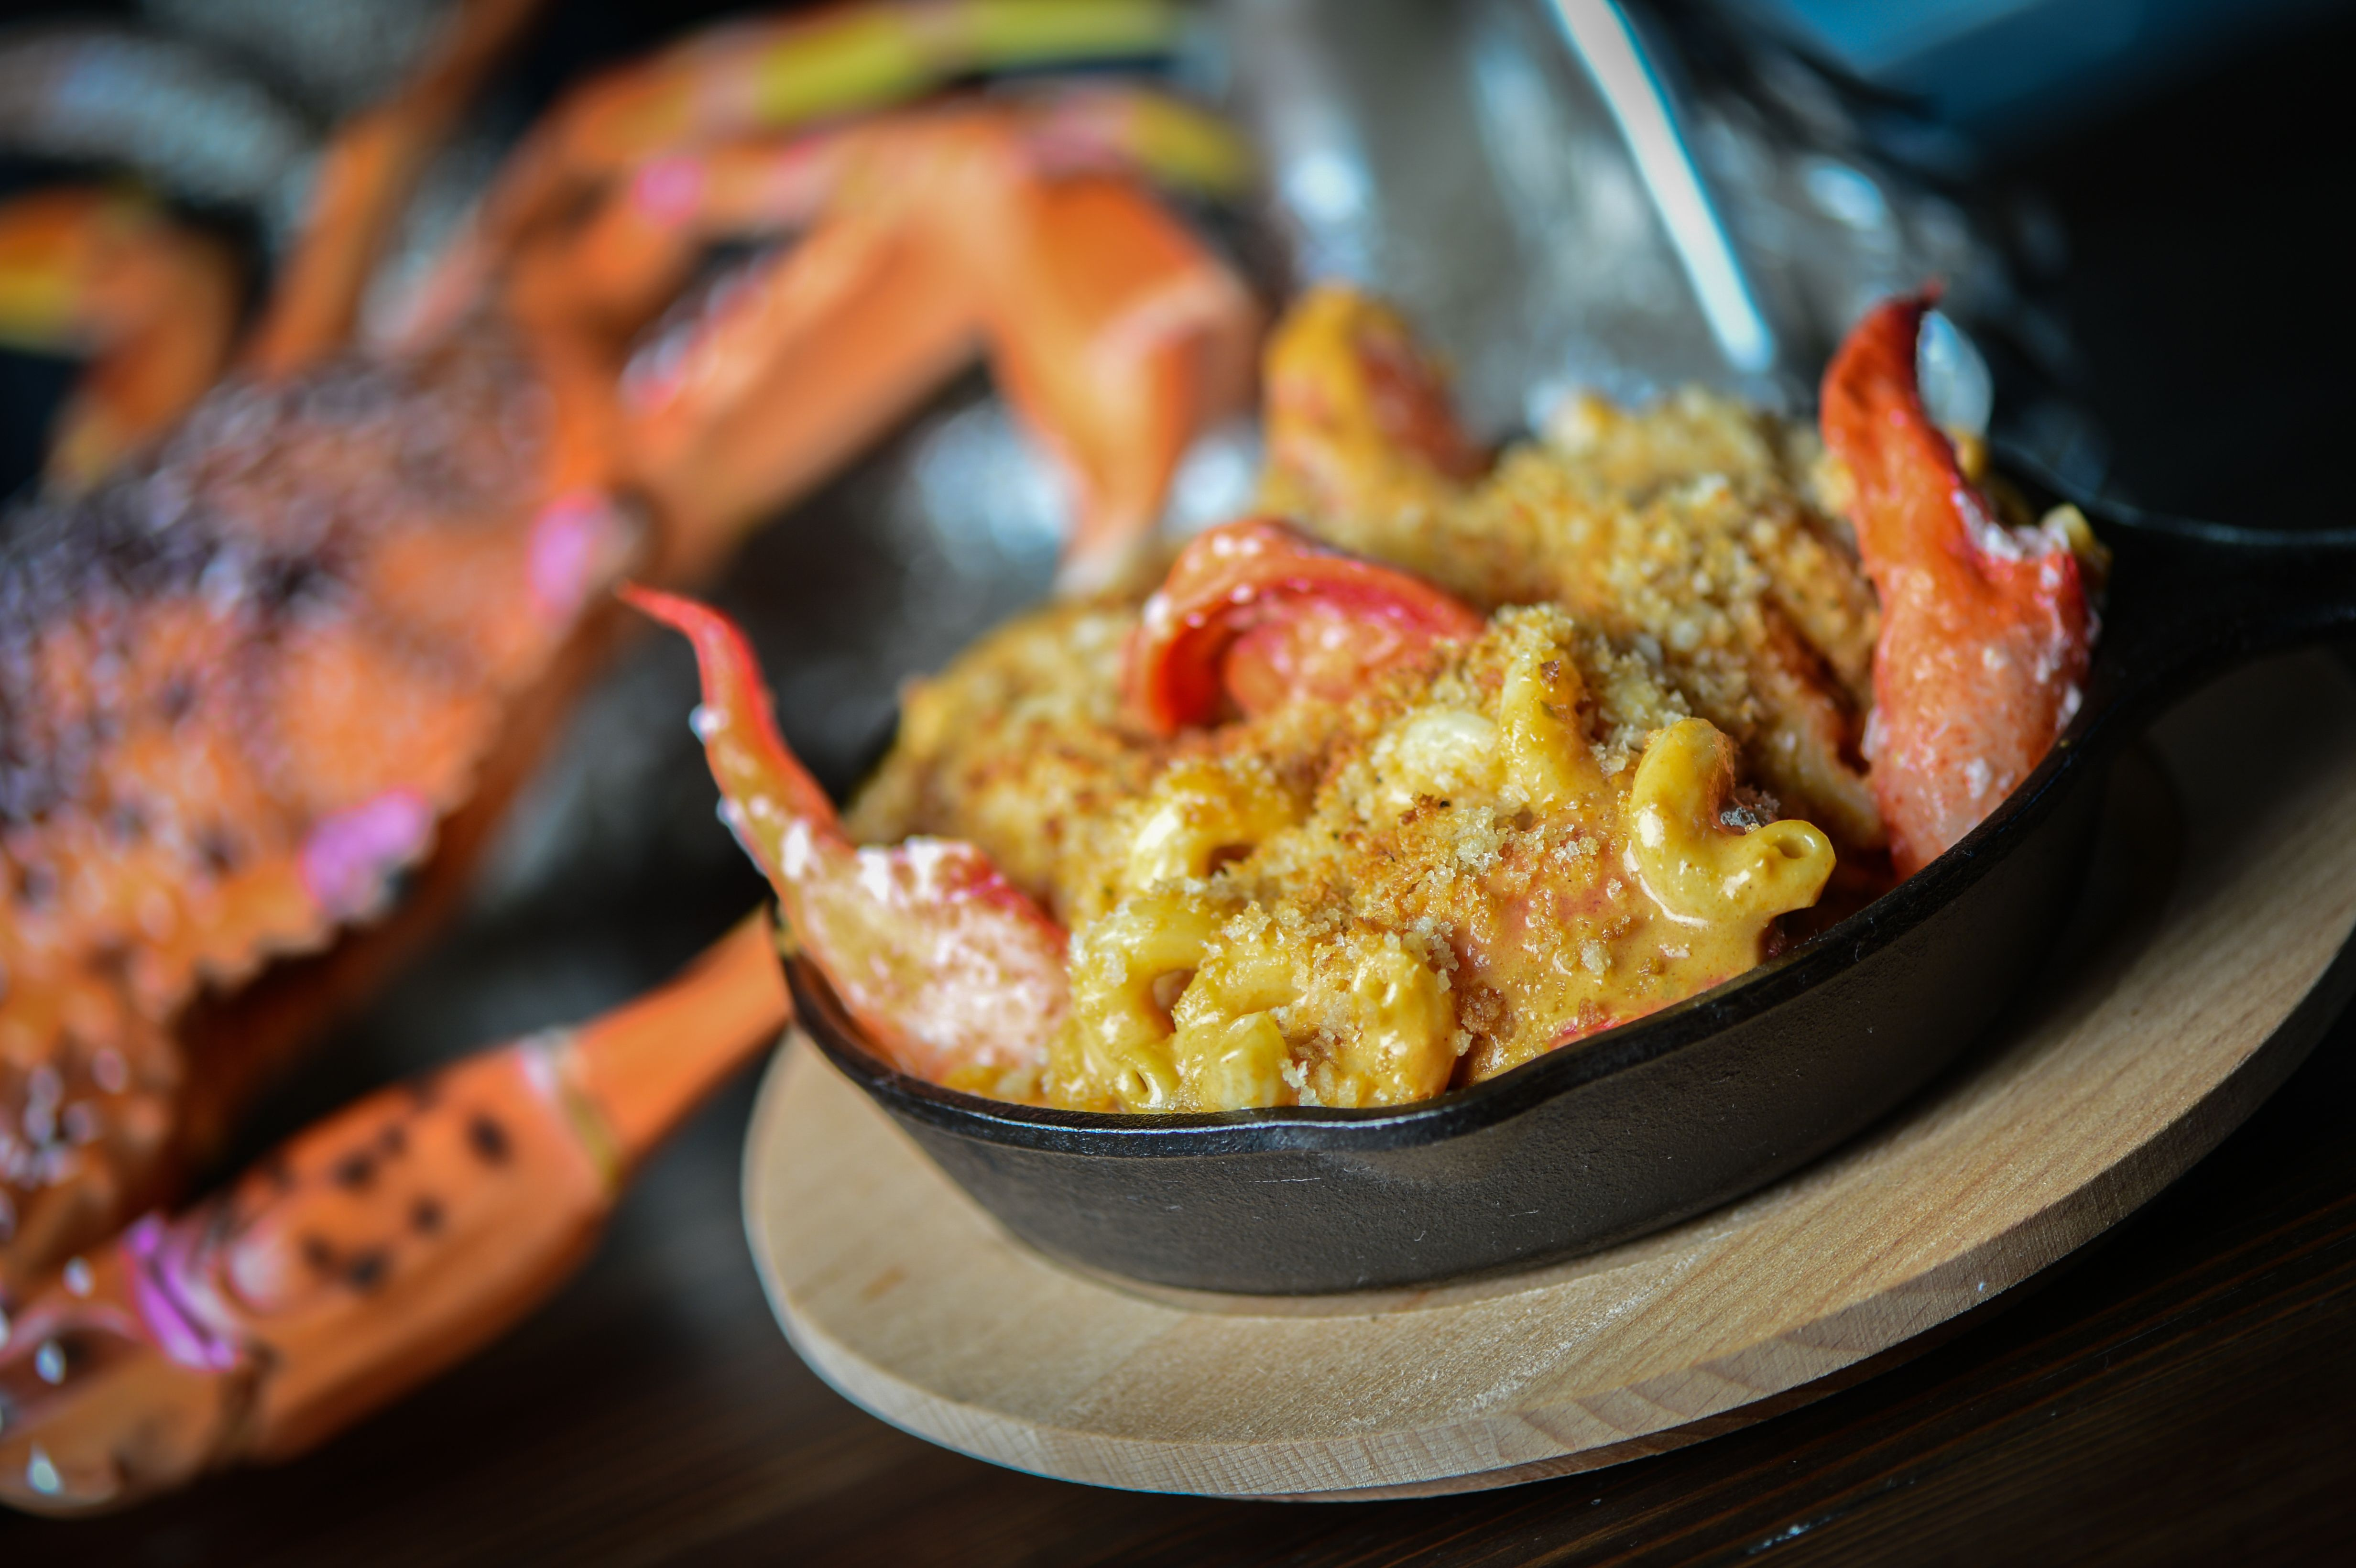 Lobster Mac n' Cheese: shucked Maine lobster, cavatappi pasta, lobster cheese sauce, bacony bread crumbs.